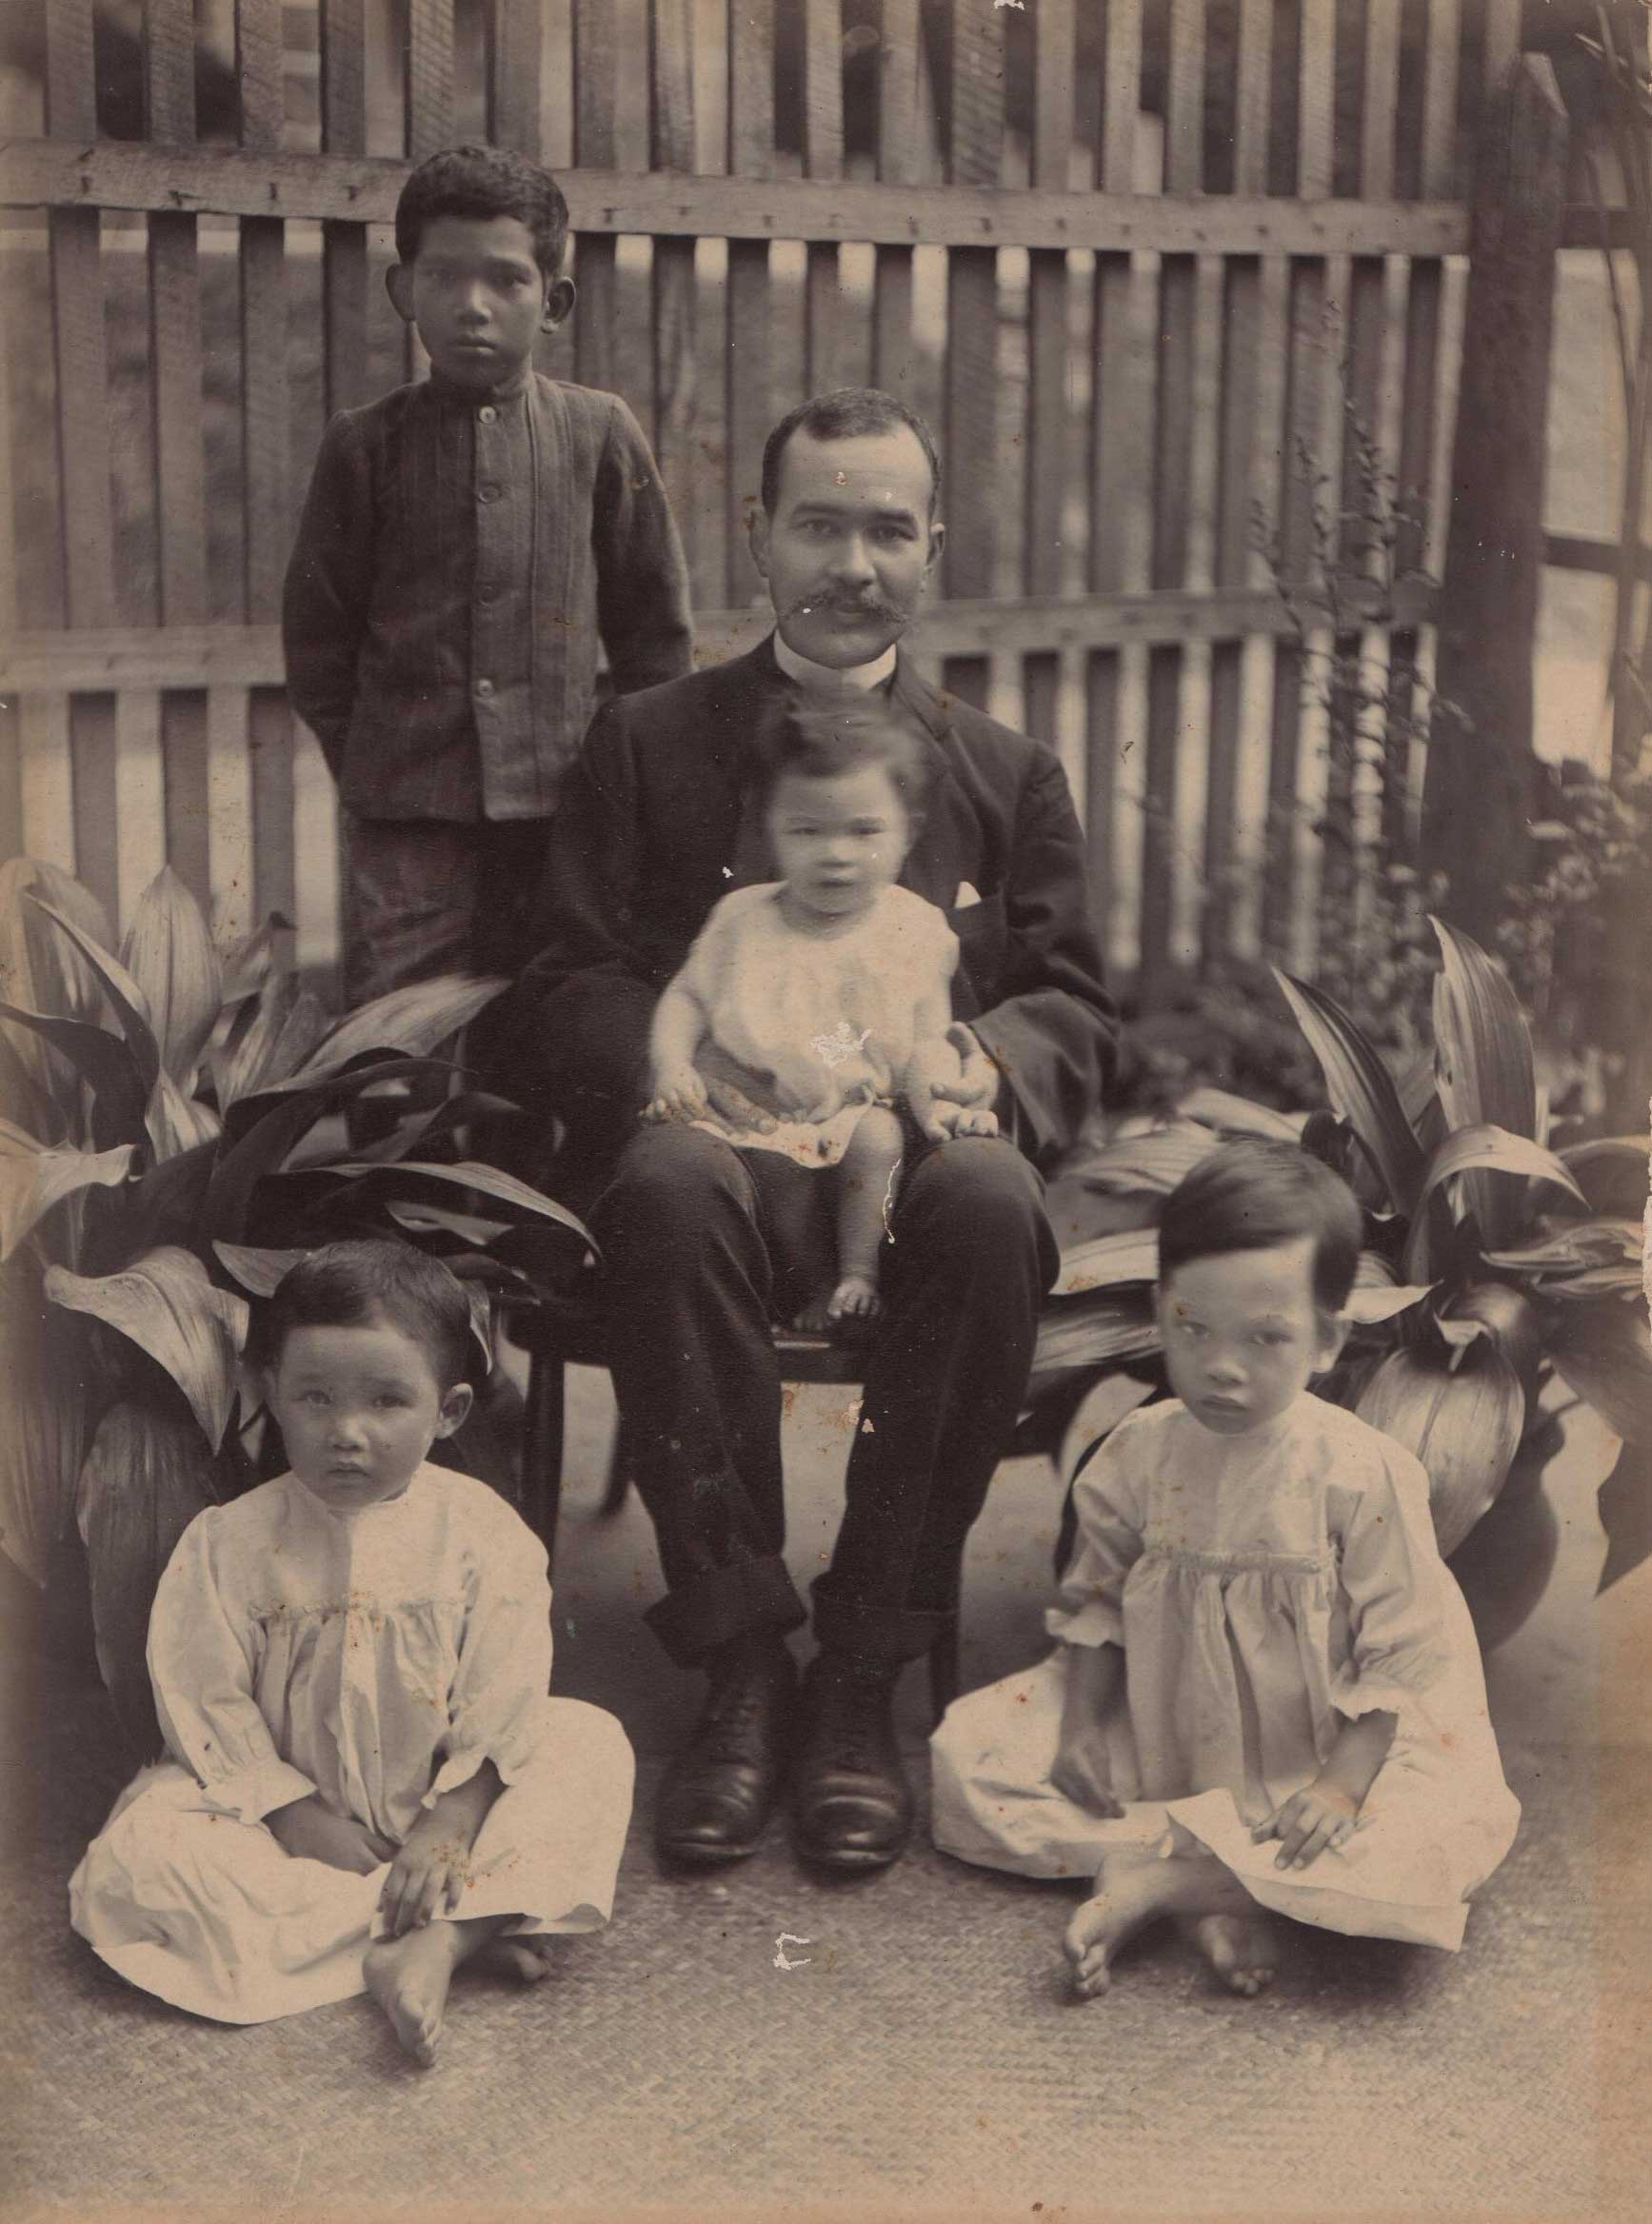 April's grandfather and family